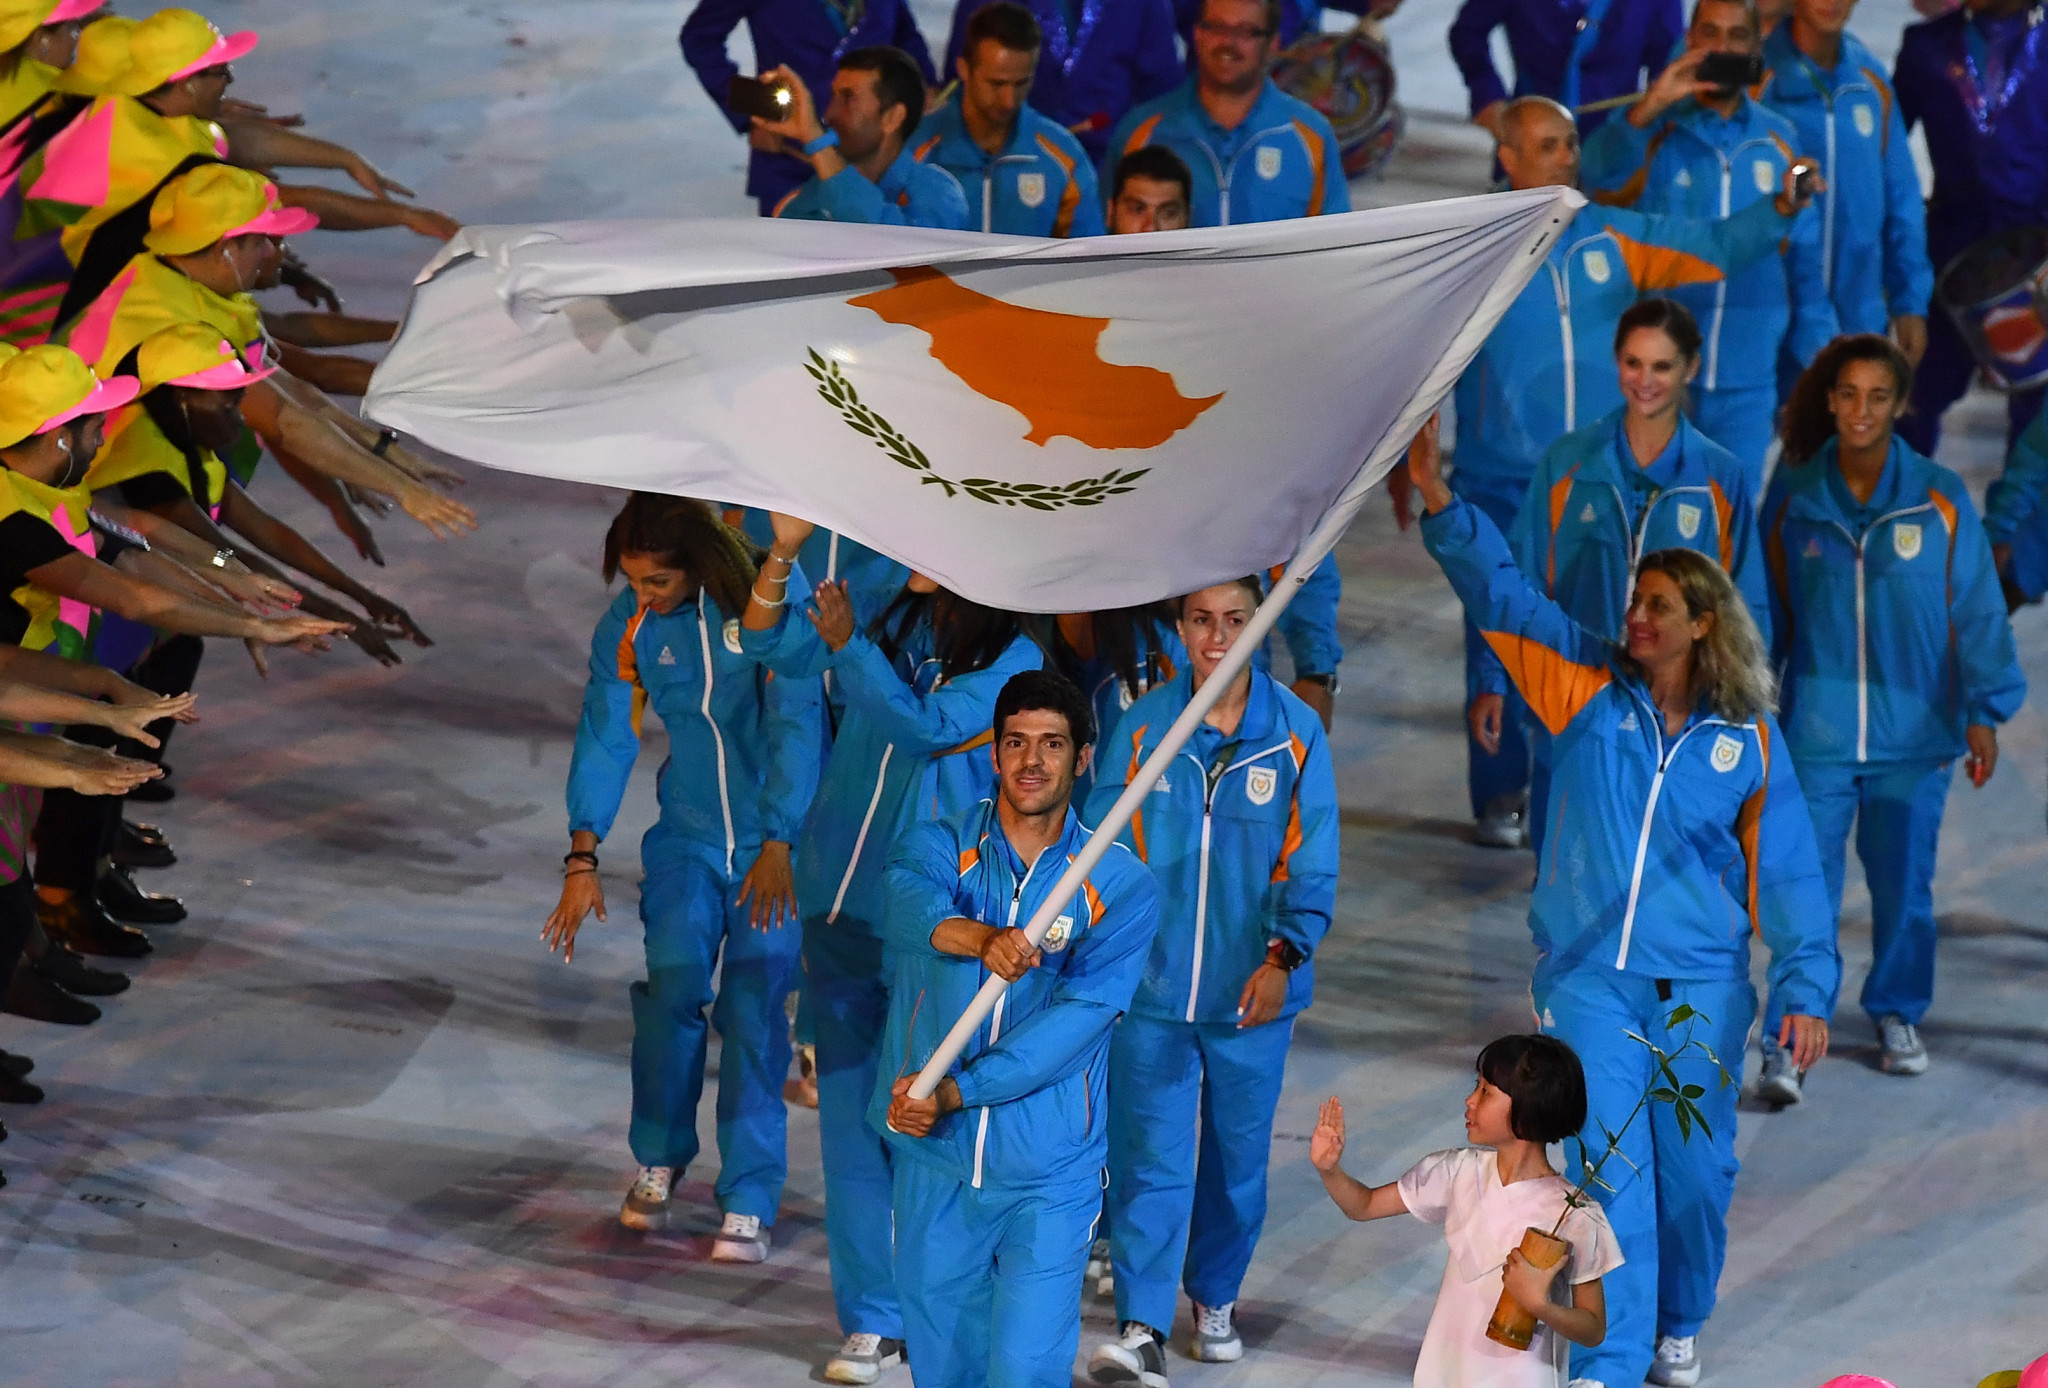 Cyprus Olympic Committee's Adopt An Athlete scheme generates €300,000